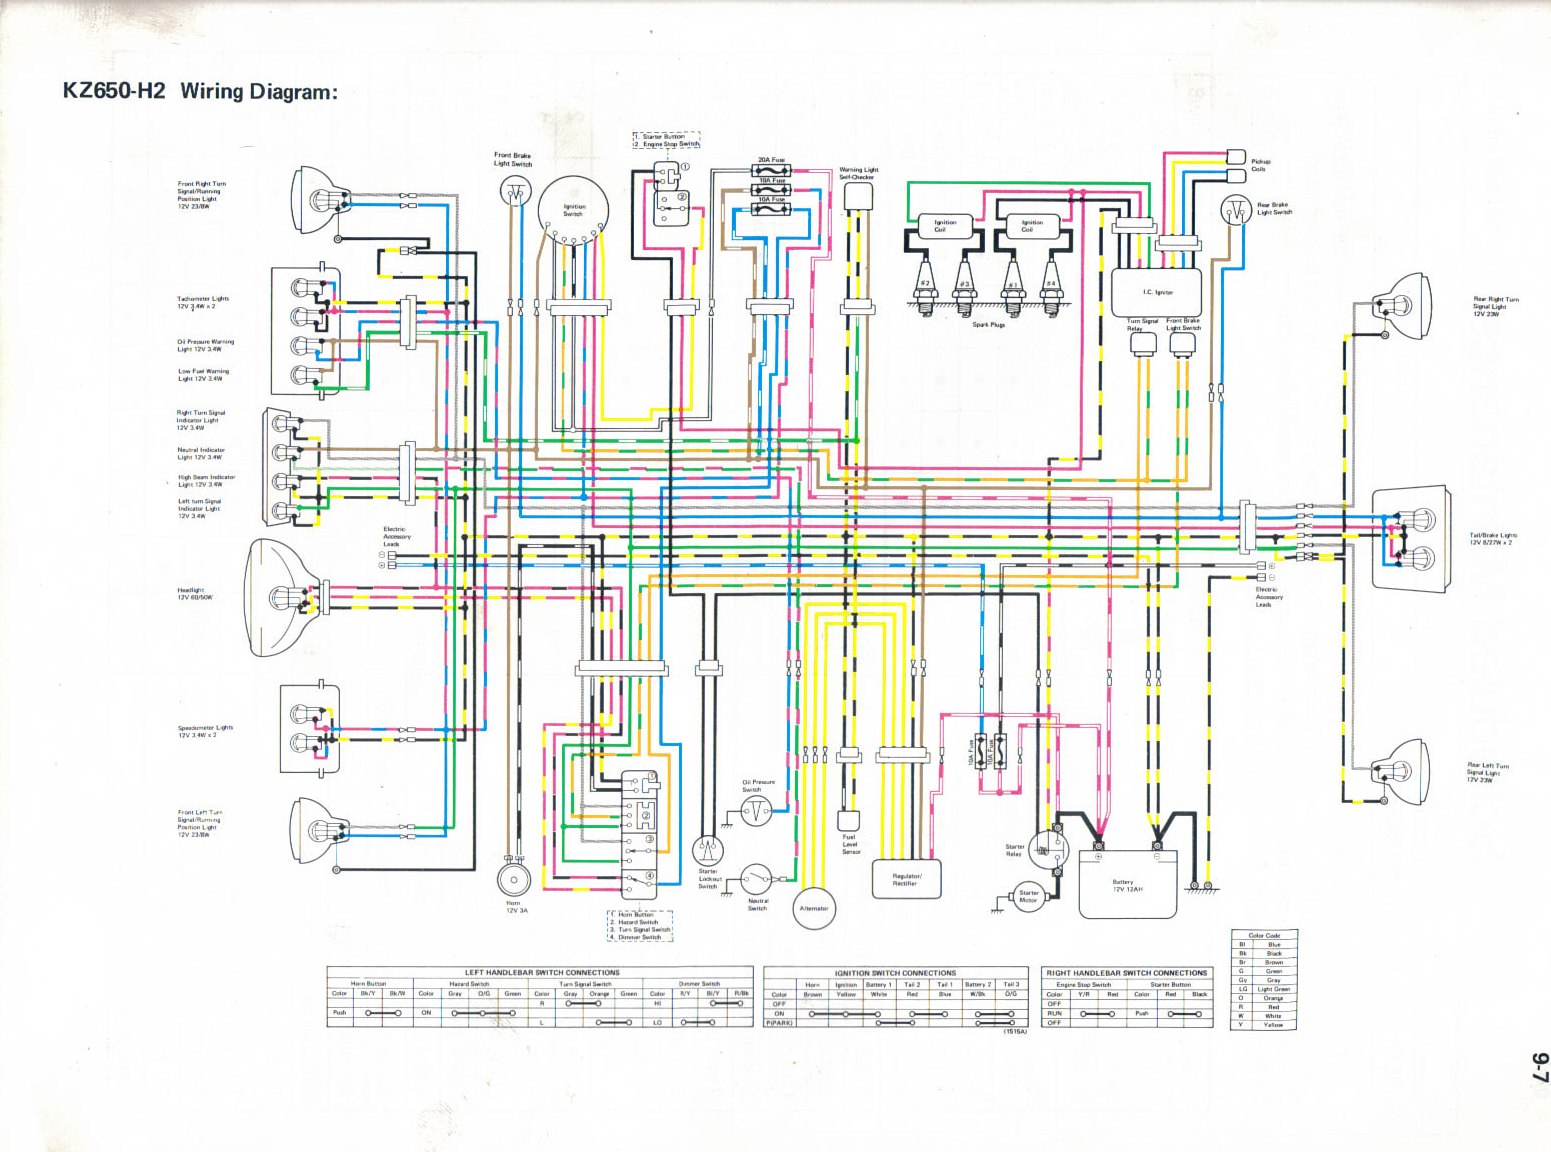 KZ650 H2 kz650 info wiring diagrams ski doo wiring diagram at n-0.co